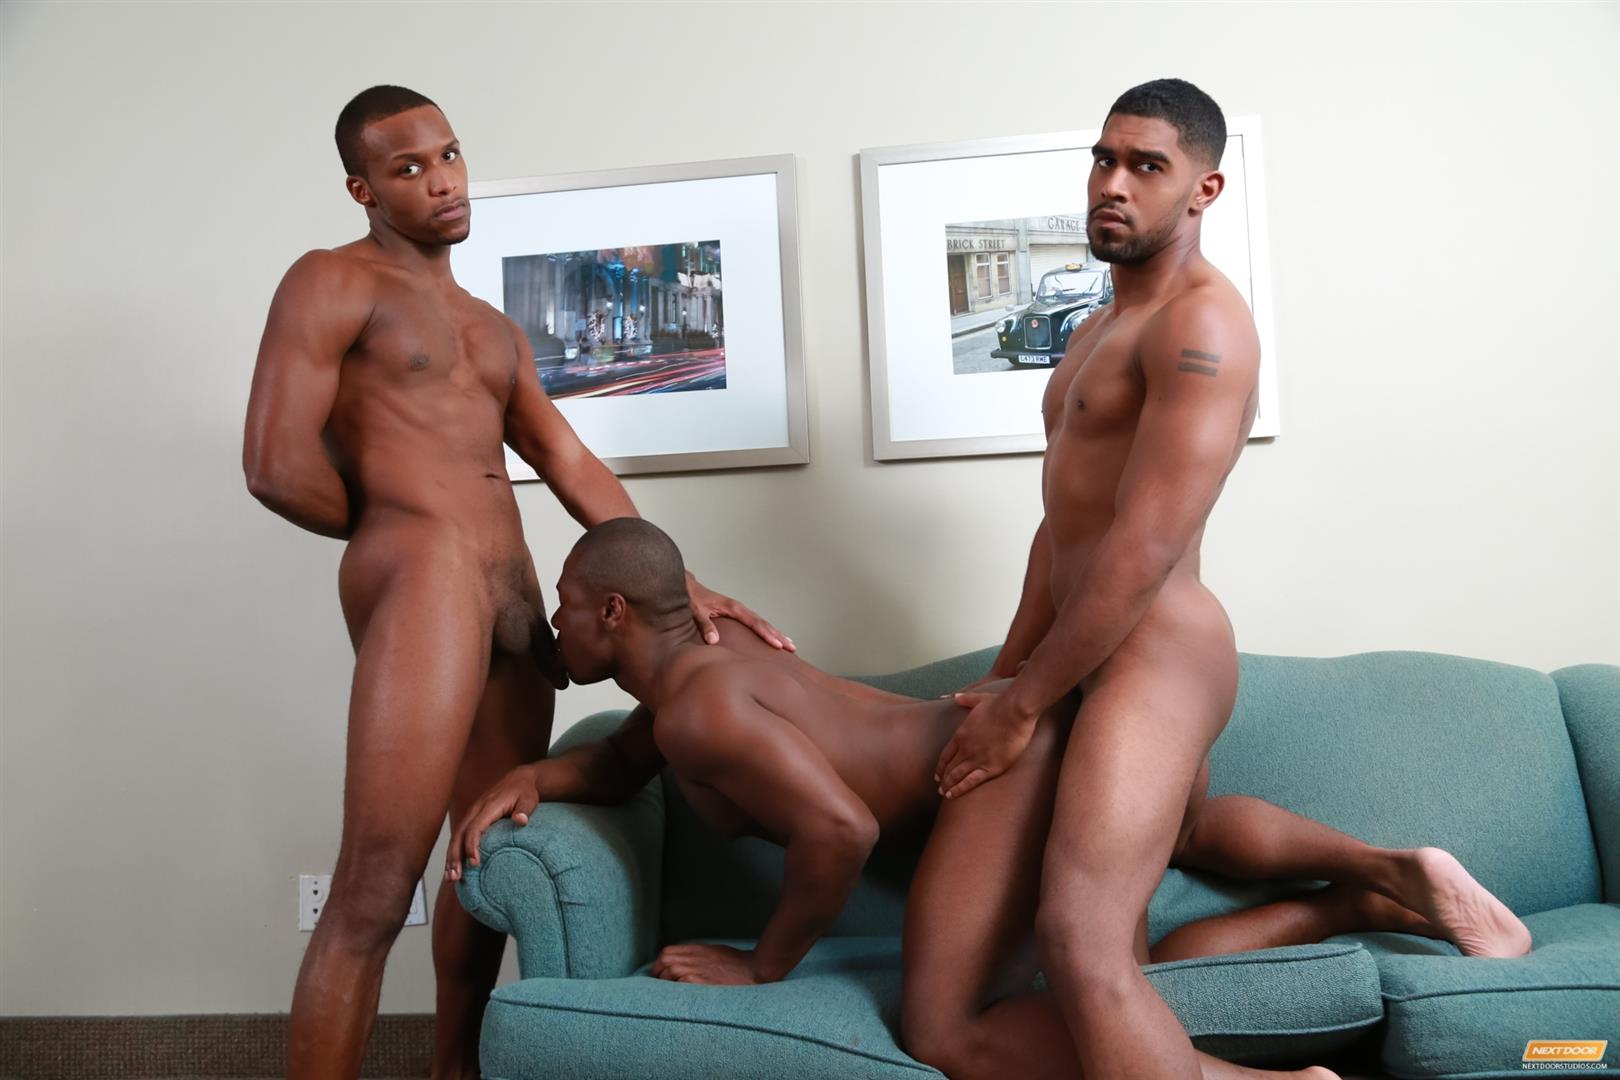 Next Door Ebony Damian Brooks and XL and Andre Donovan Black Naked Men Fucking Amateur Gay Porn 14 Three Naked Black Men, Three Big Black Cocks, One Juicy Booty